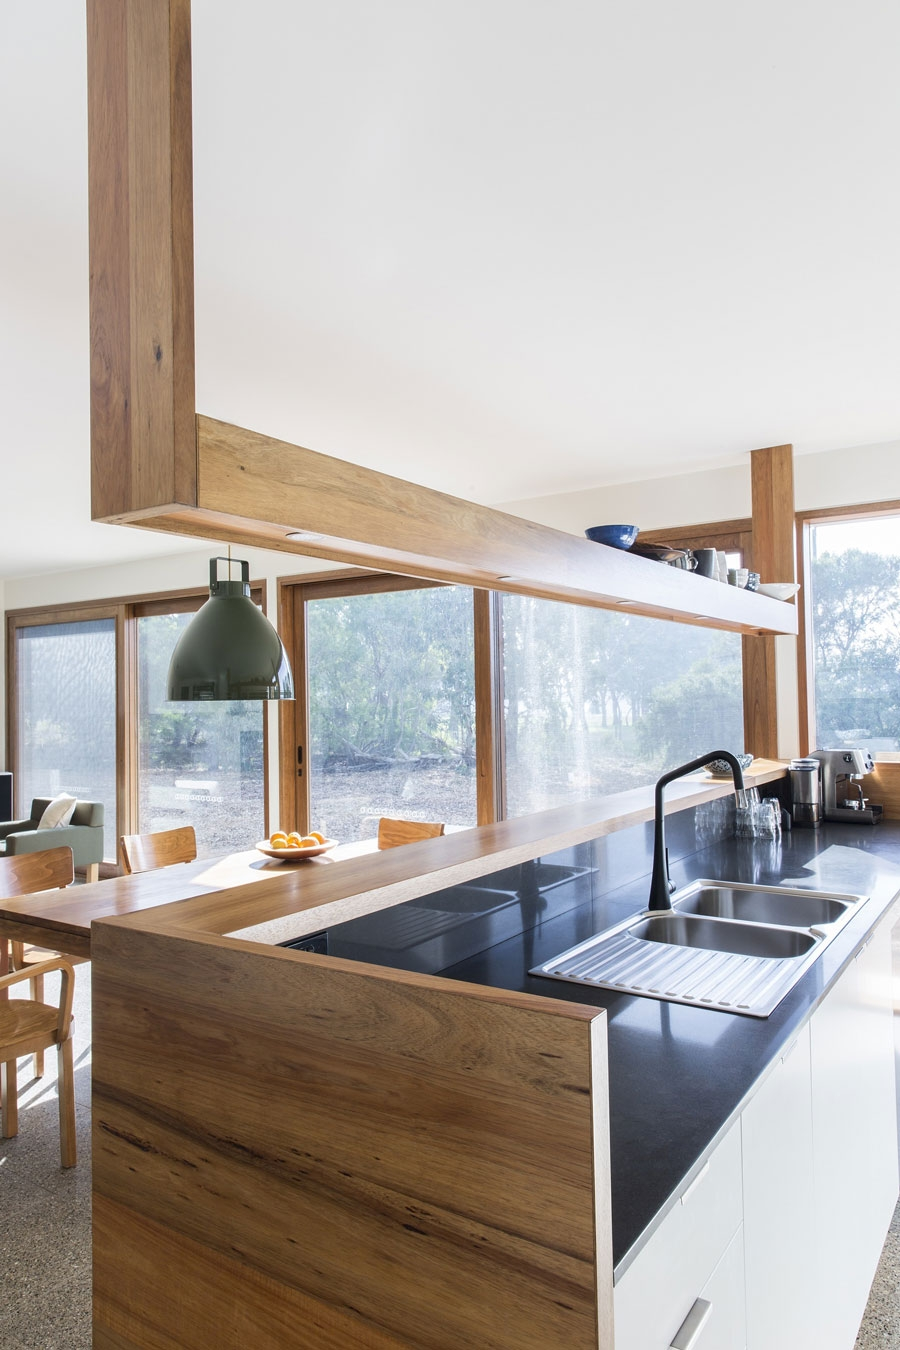 Modern kitchen island with serving area